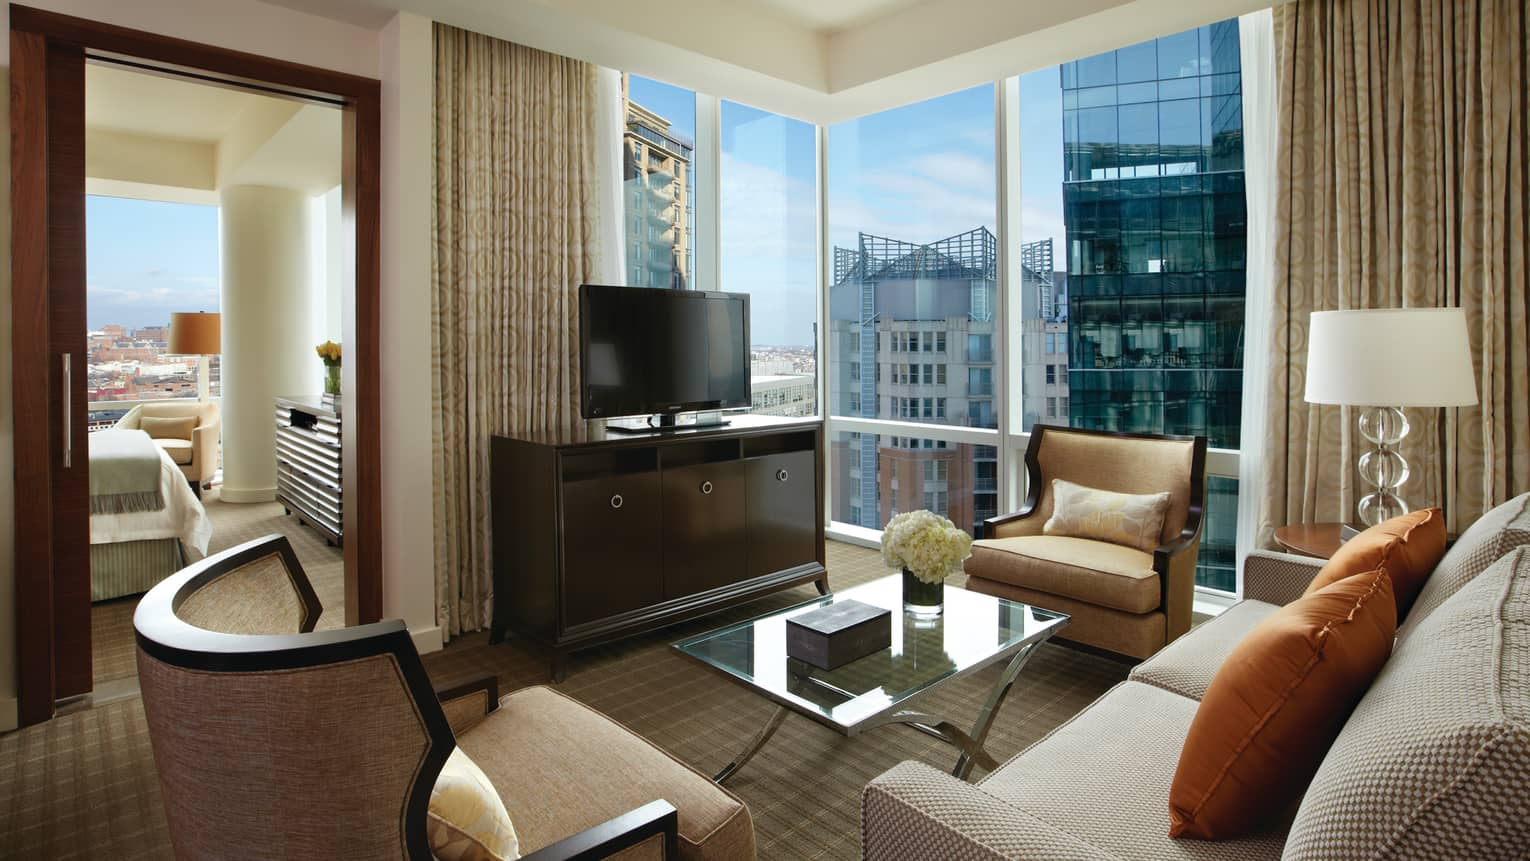 Executive Suite living room sofas, chairs, TV, corner glass windows